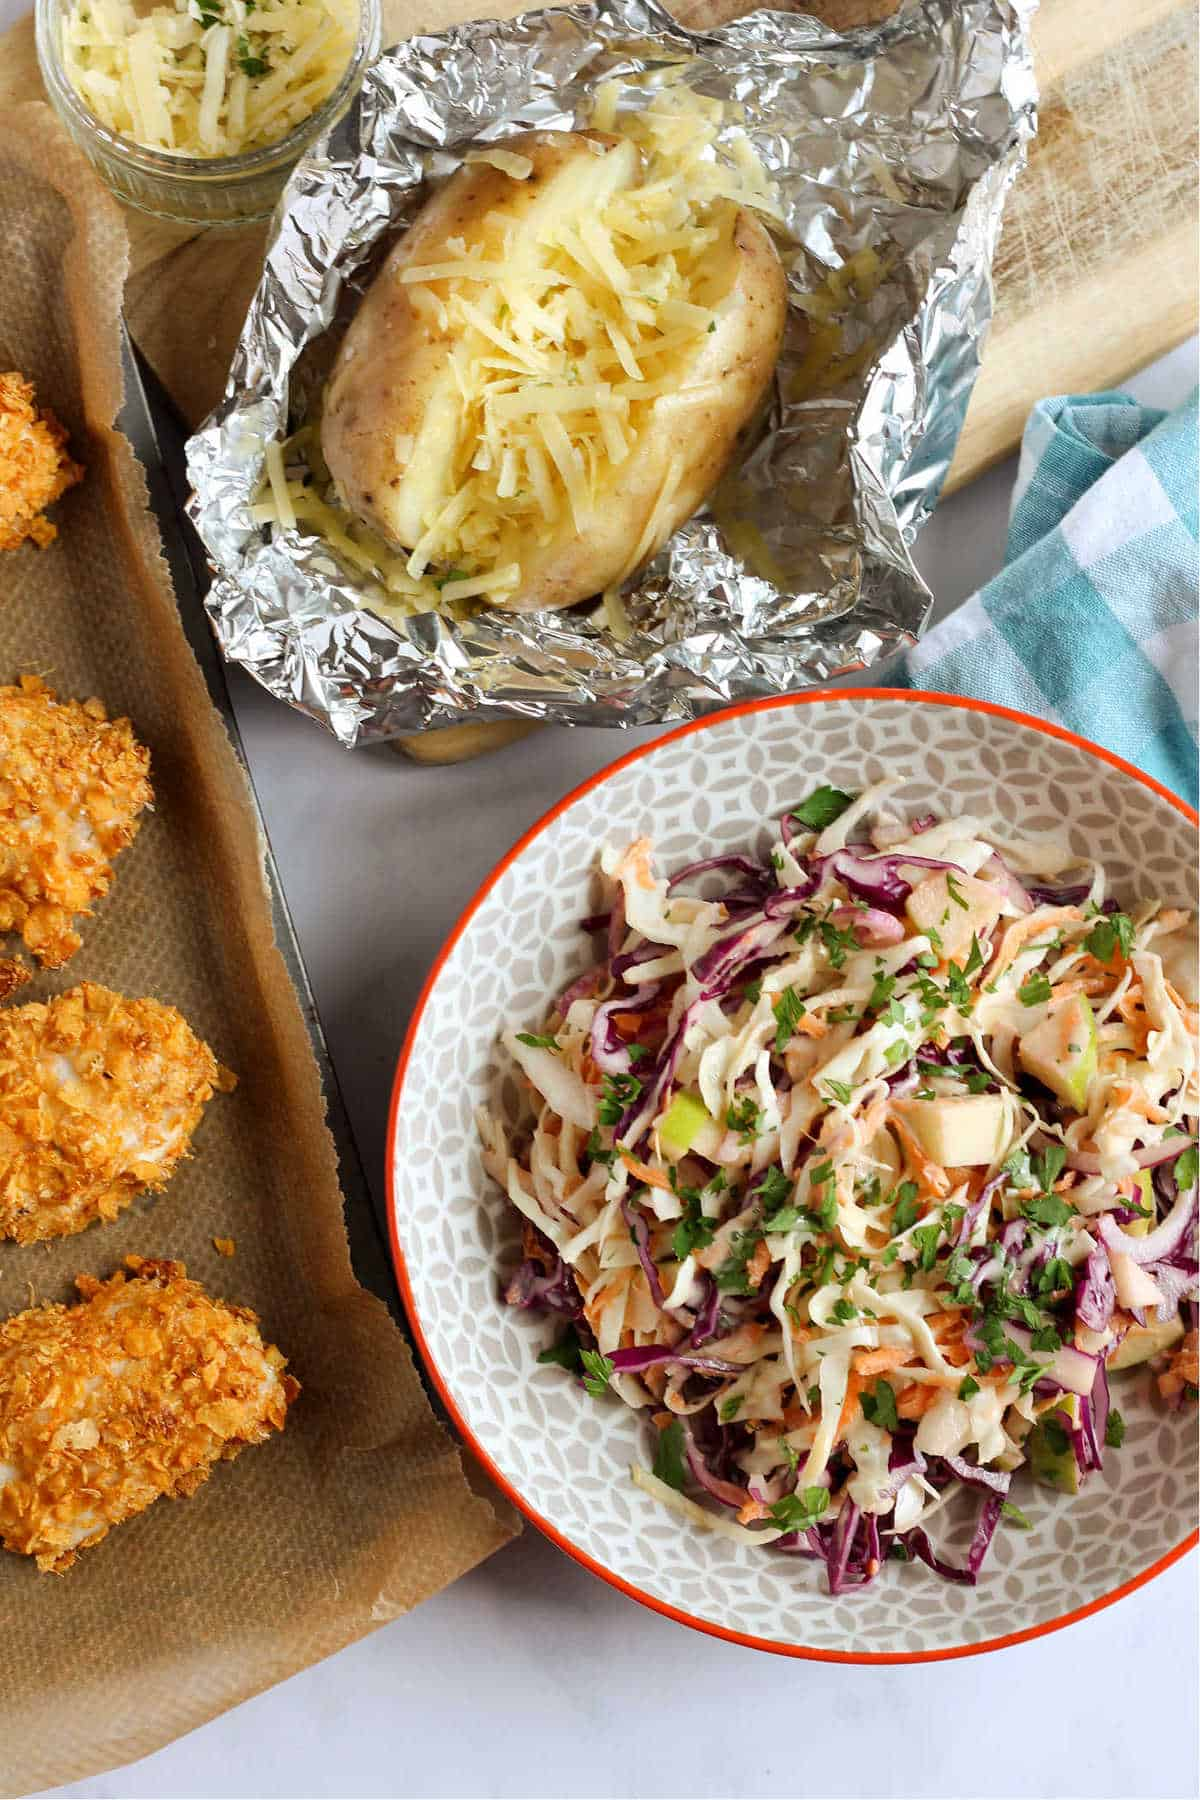 Apple coleslaw in a bowl with a baked potato and cornflake chicken nuggets